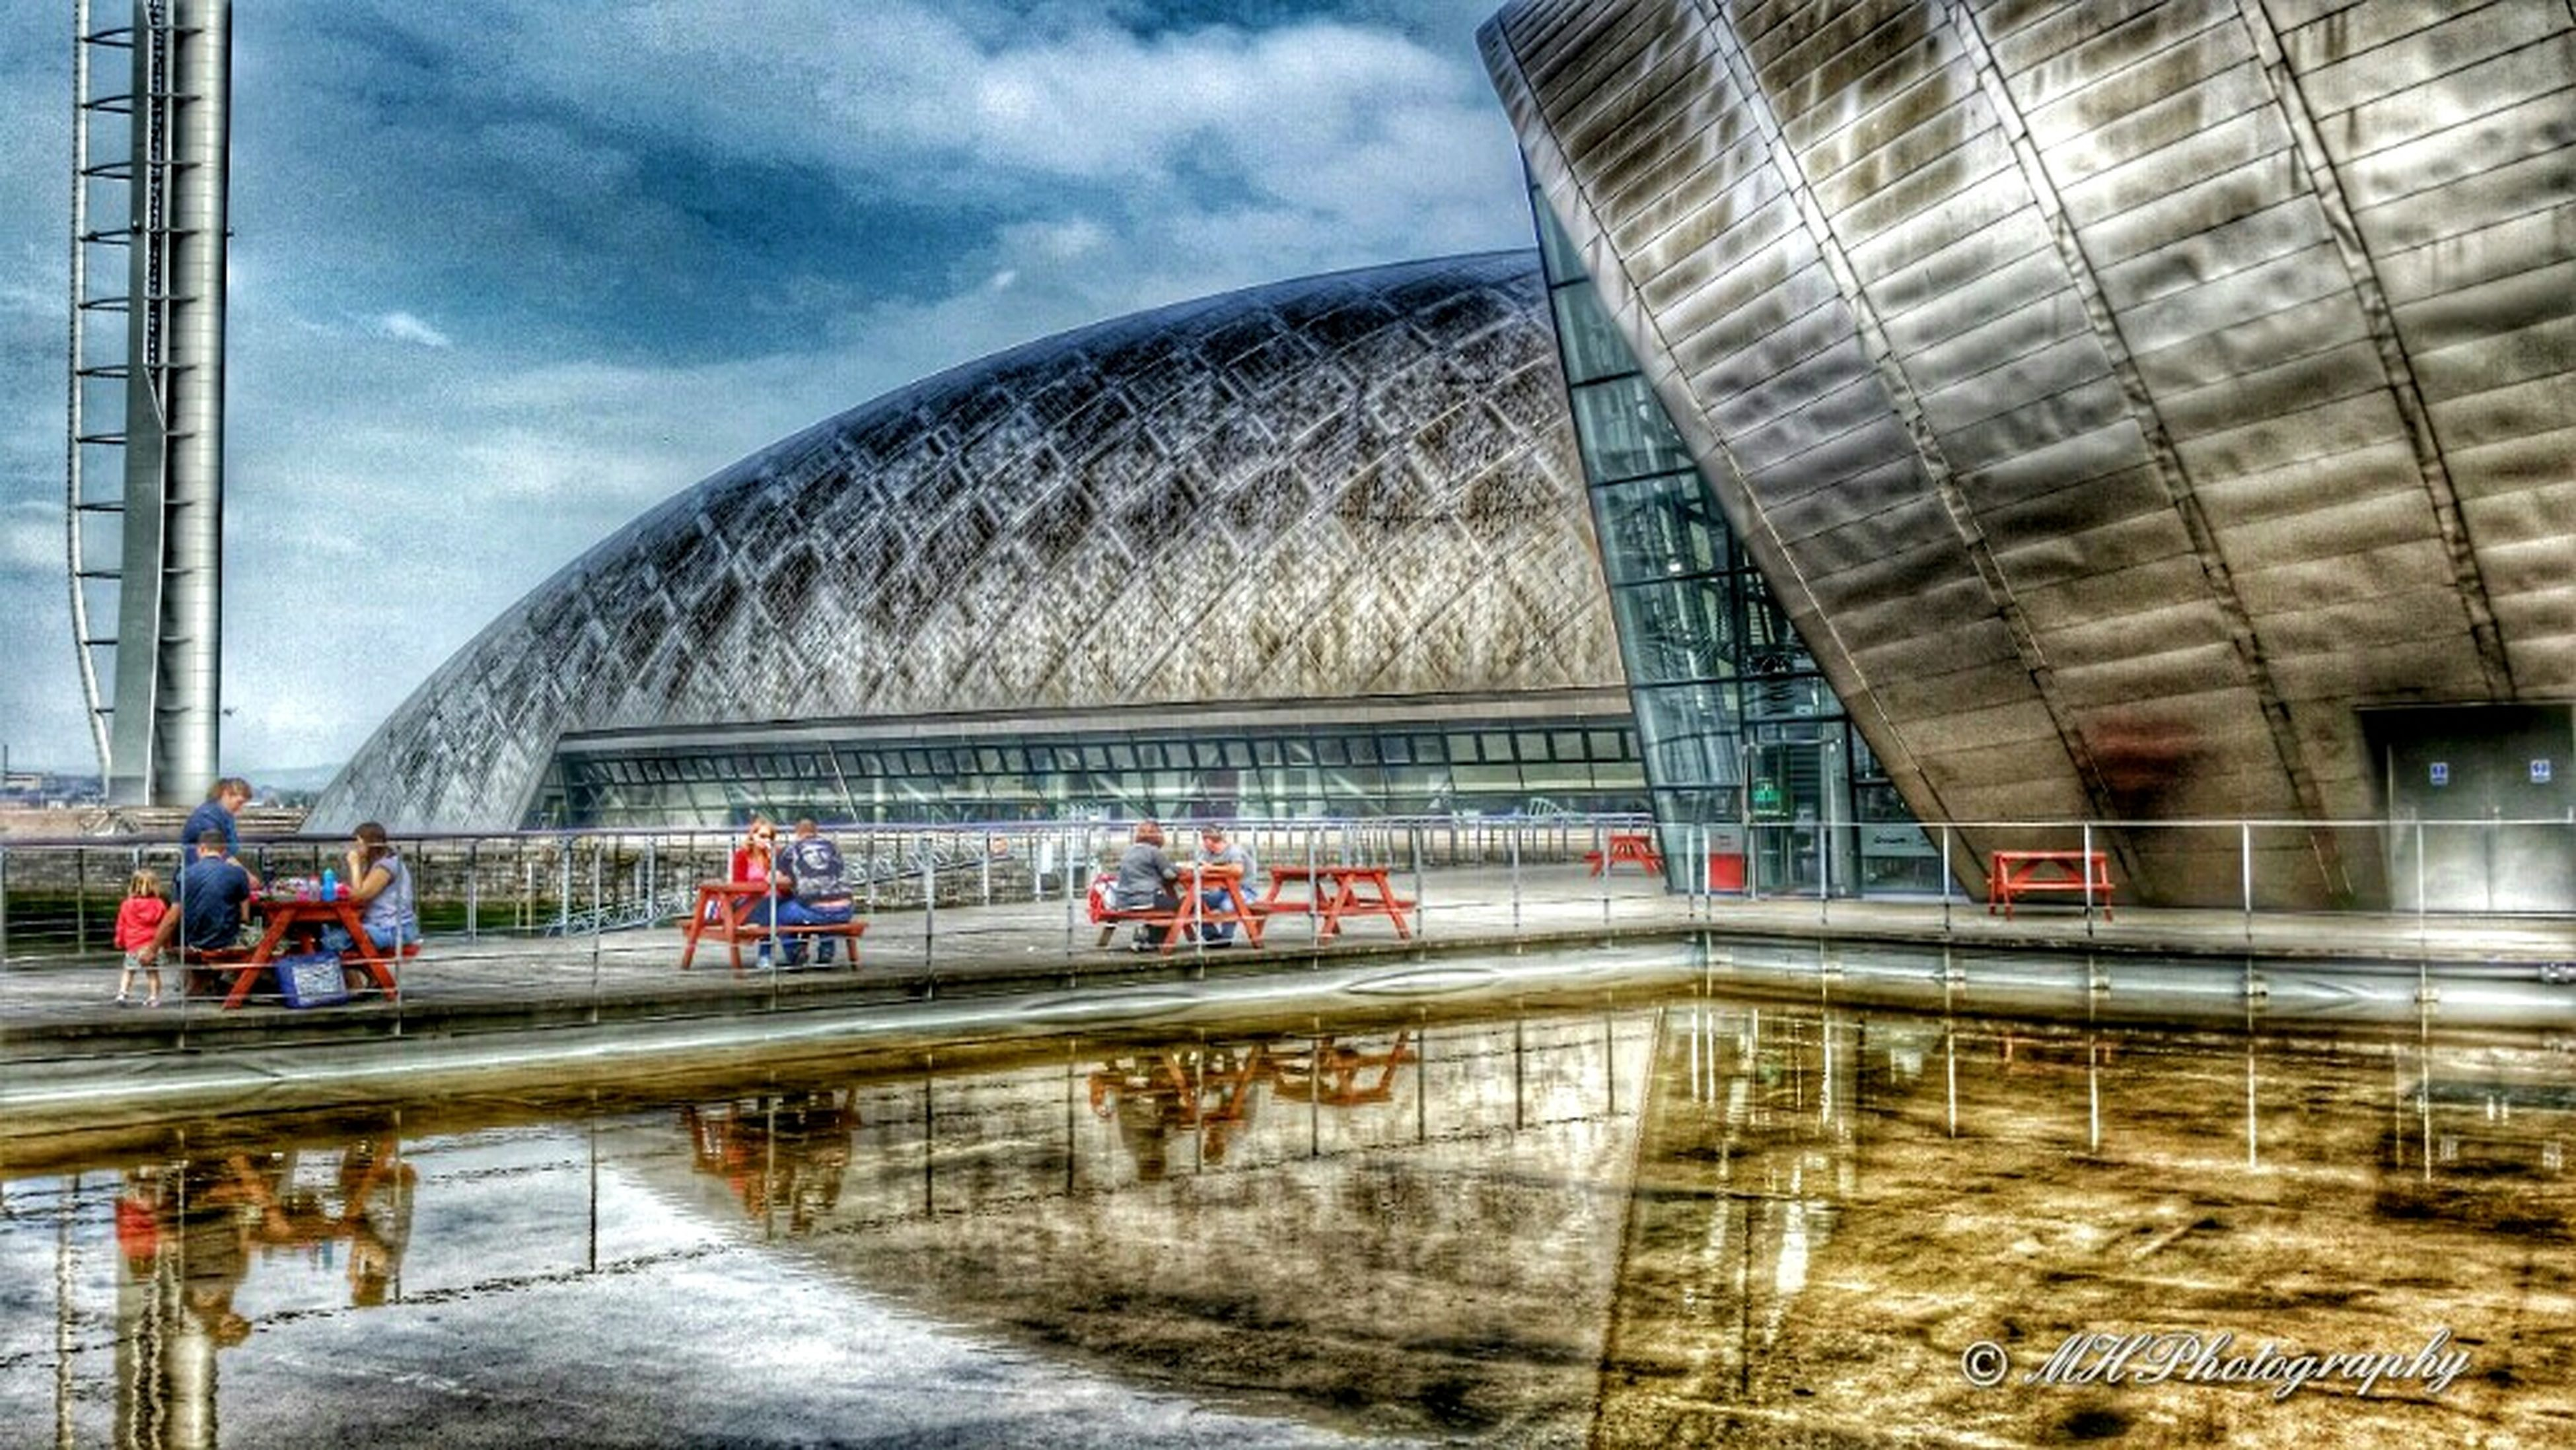 architecture, built structure, building exterior, sky, bridge - man made structure, water, transportation, connection, city, cloud - sky, reflection, river, travel destinations, travel, arch, modern, famous place, engineering, incidental people, rail transportation